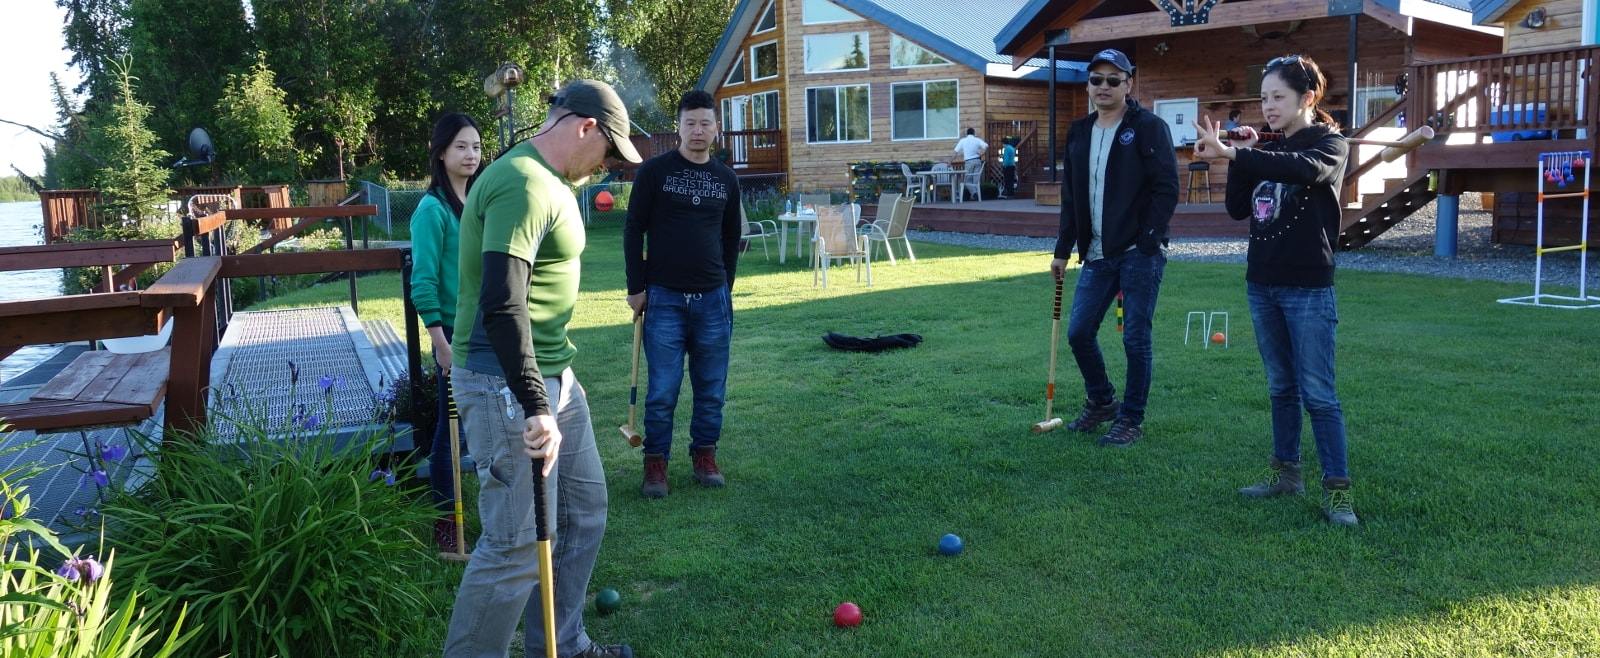 alaska-lodge-croquet-game.1600w-min